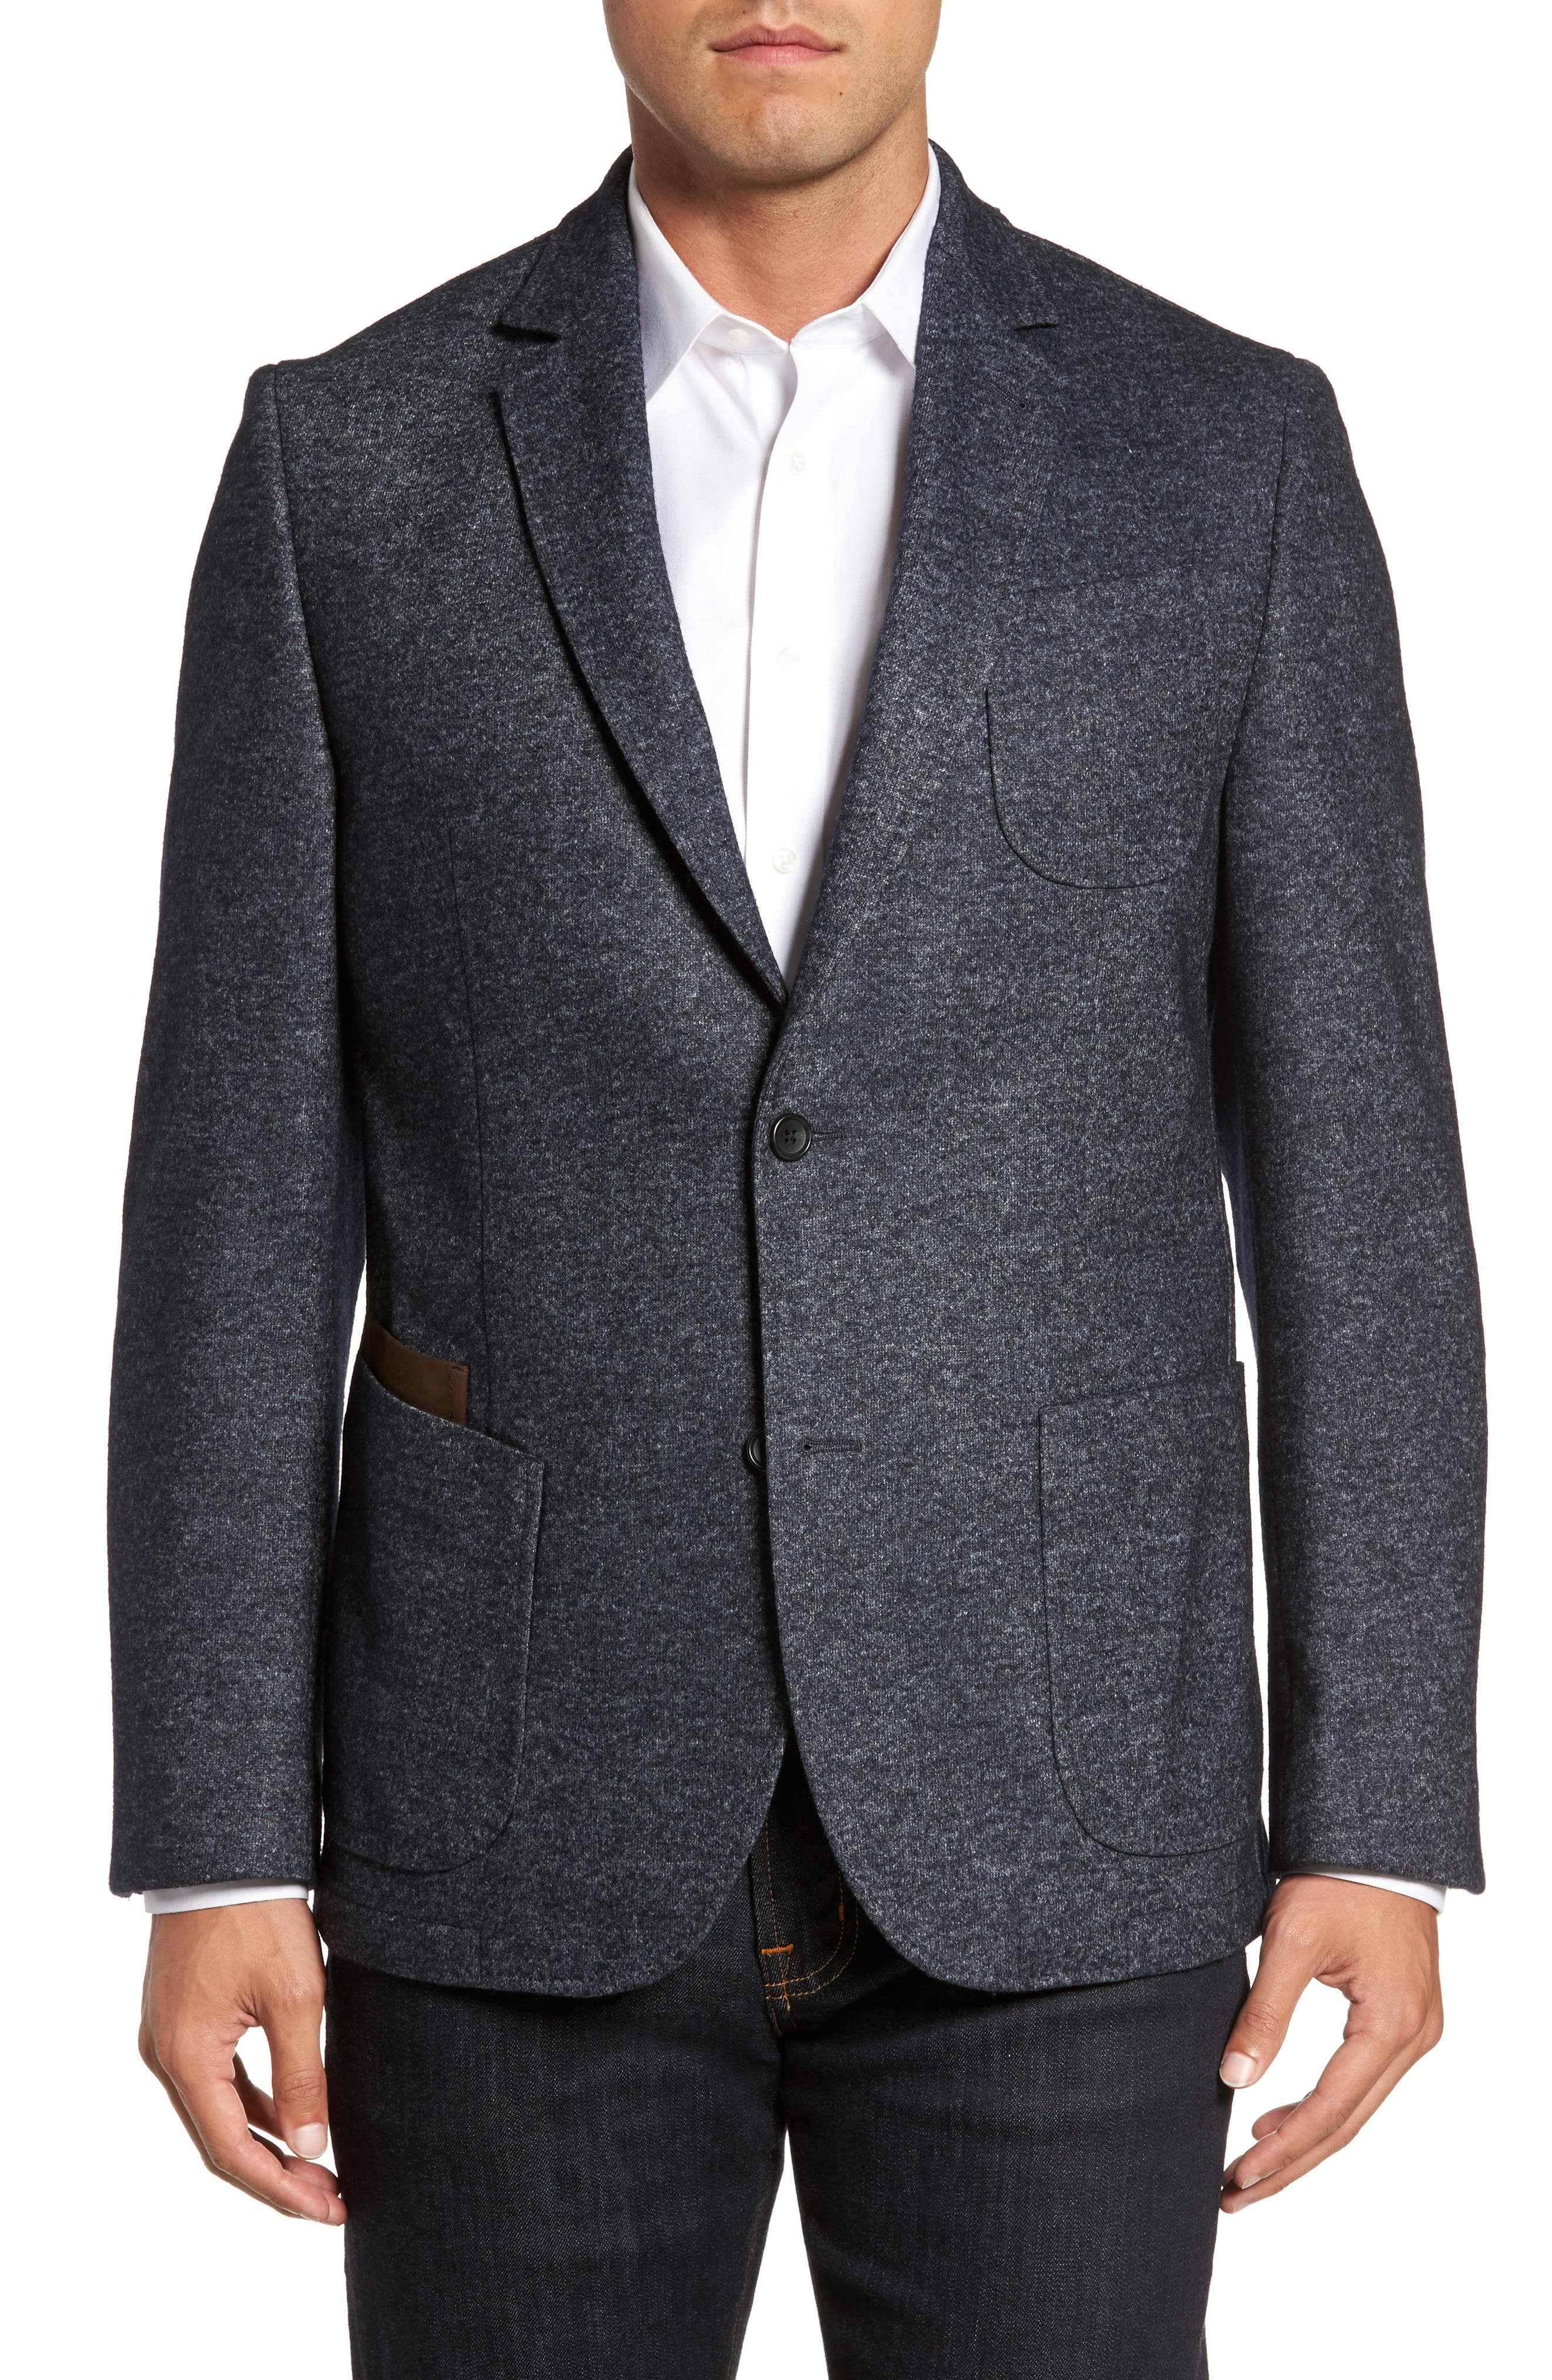 Alternate Image 1 Selected - FLYNT Classic Fit Suede Trim Jersey Sport Coat